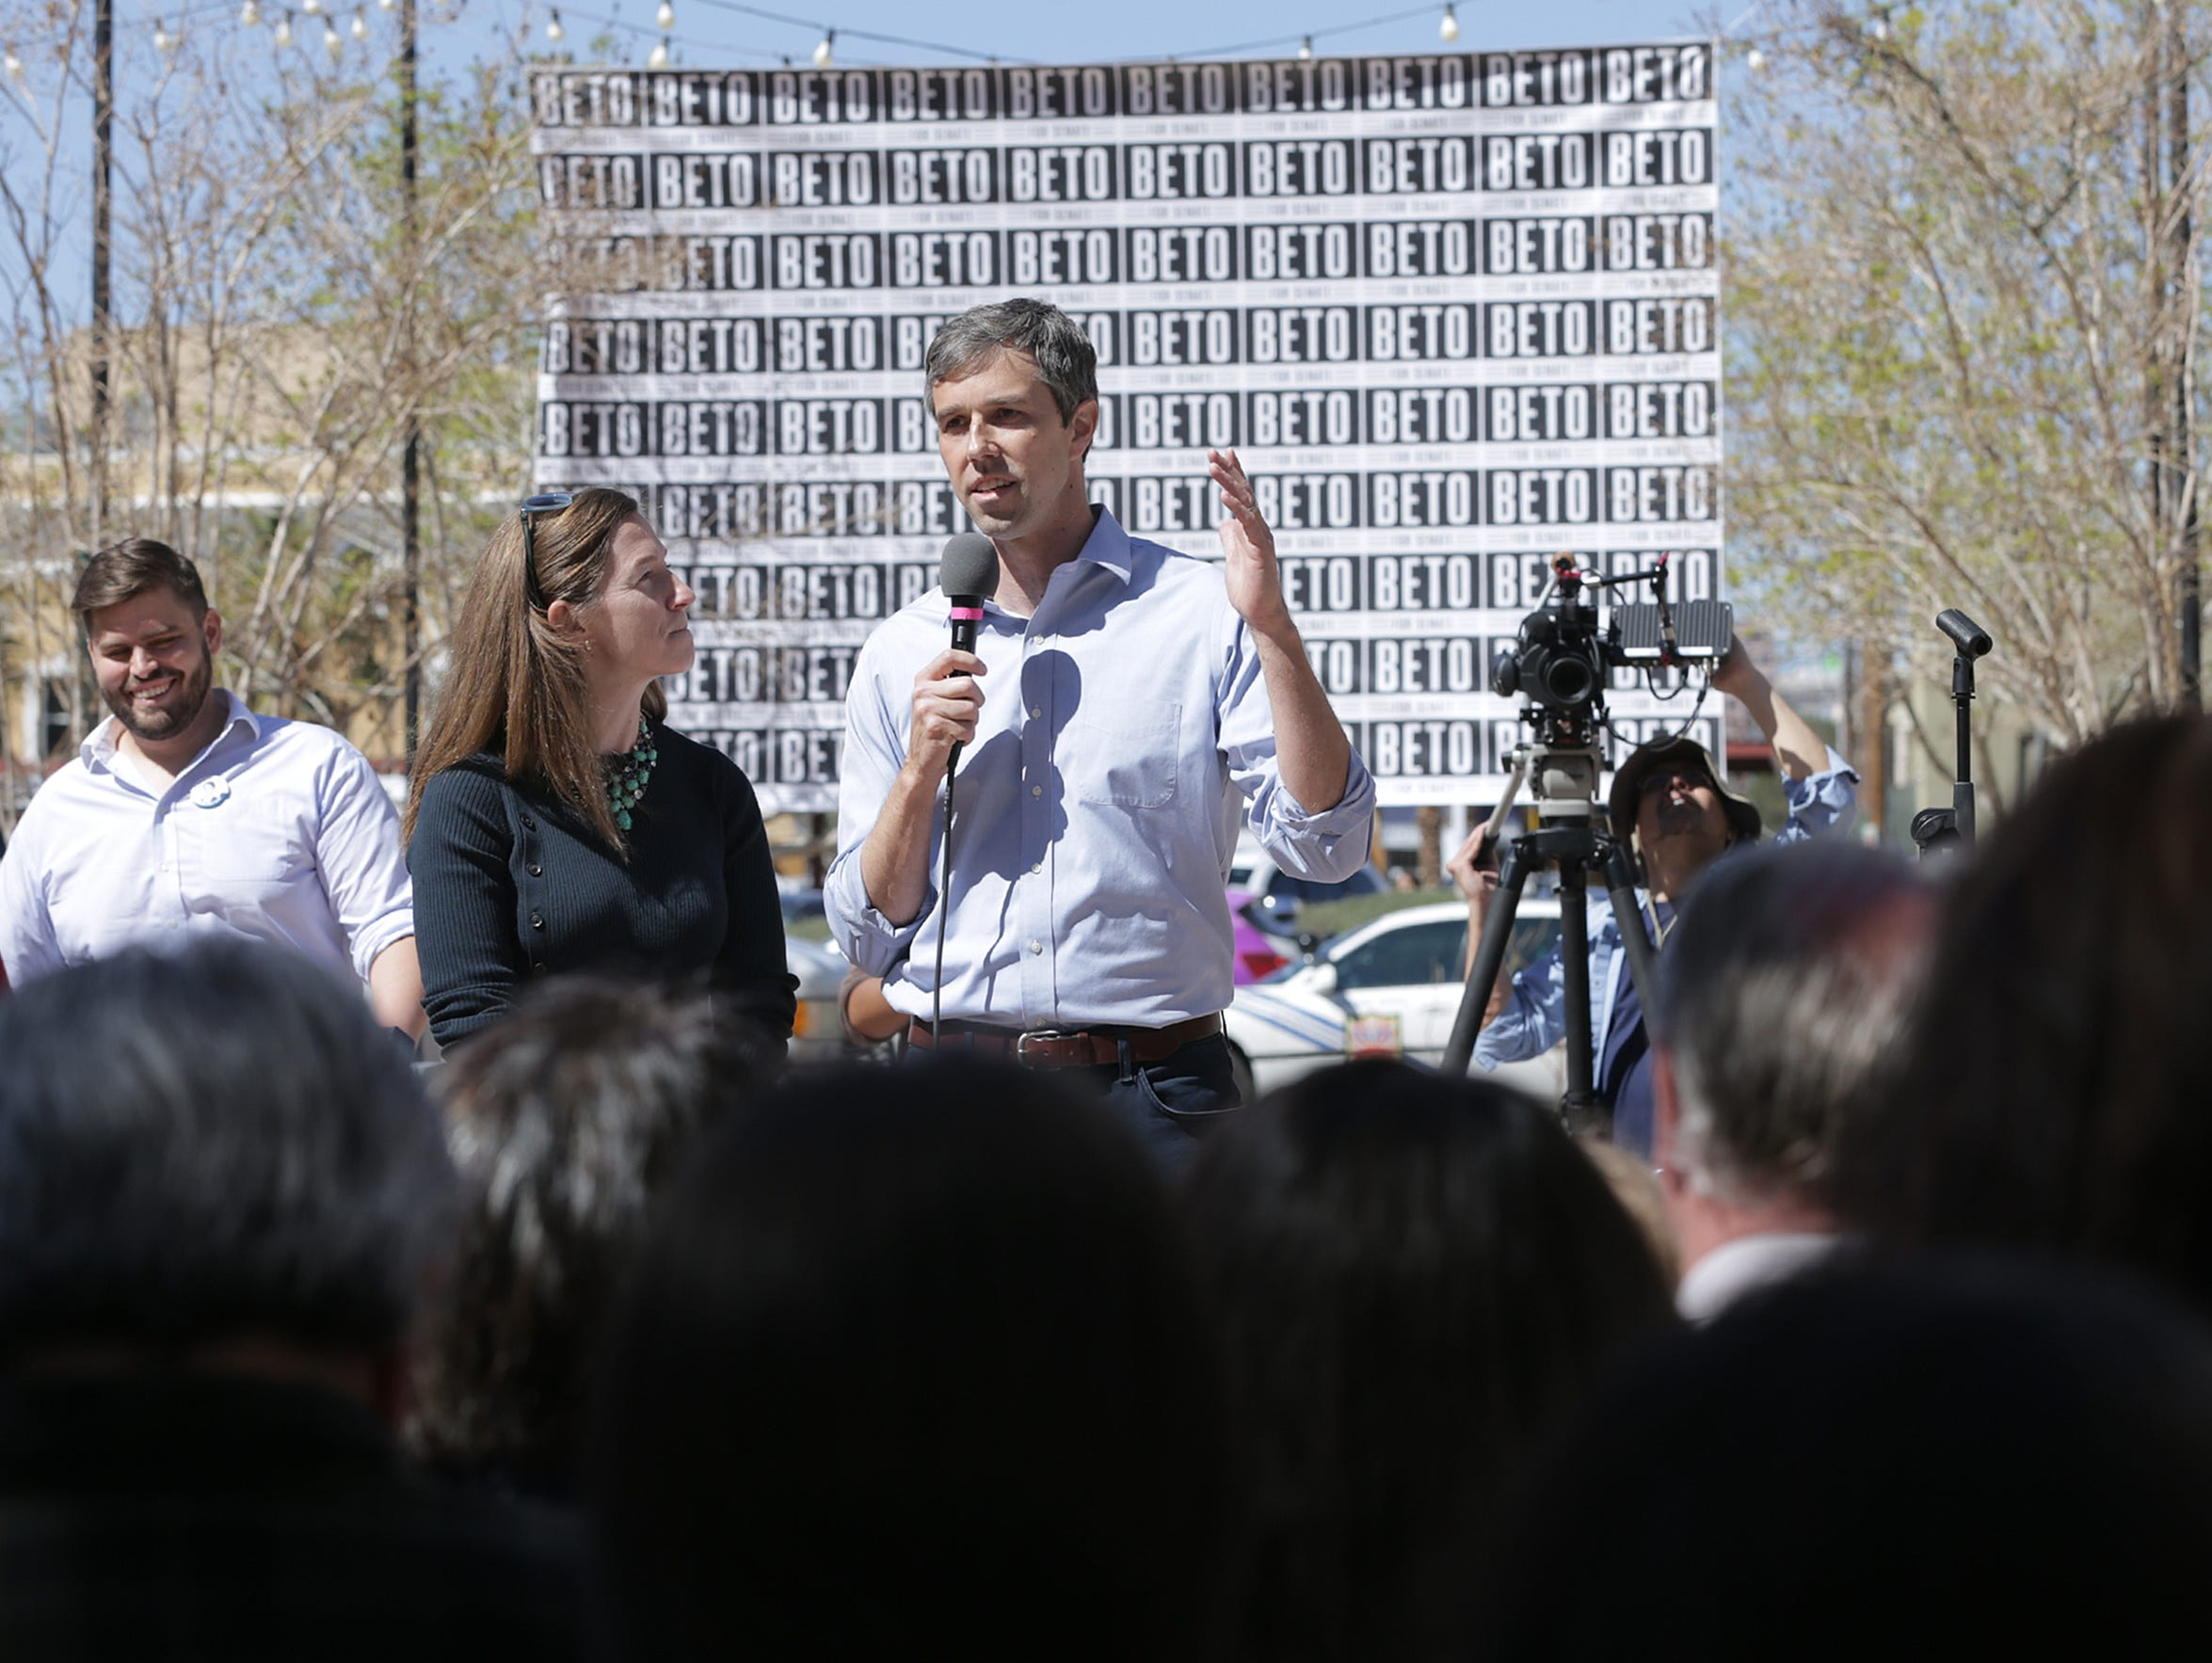 U.S. Rep. Beto O'Rourke, who is running to unseat Republican